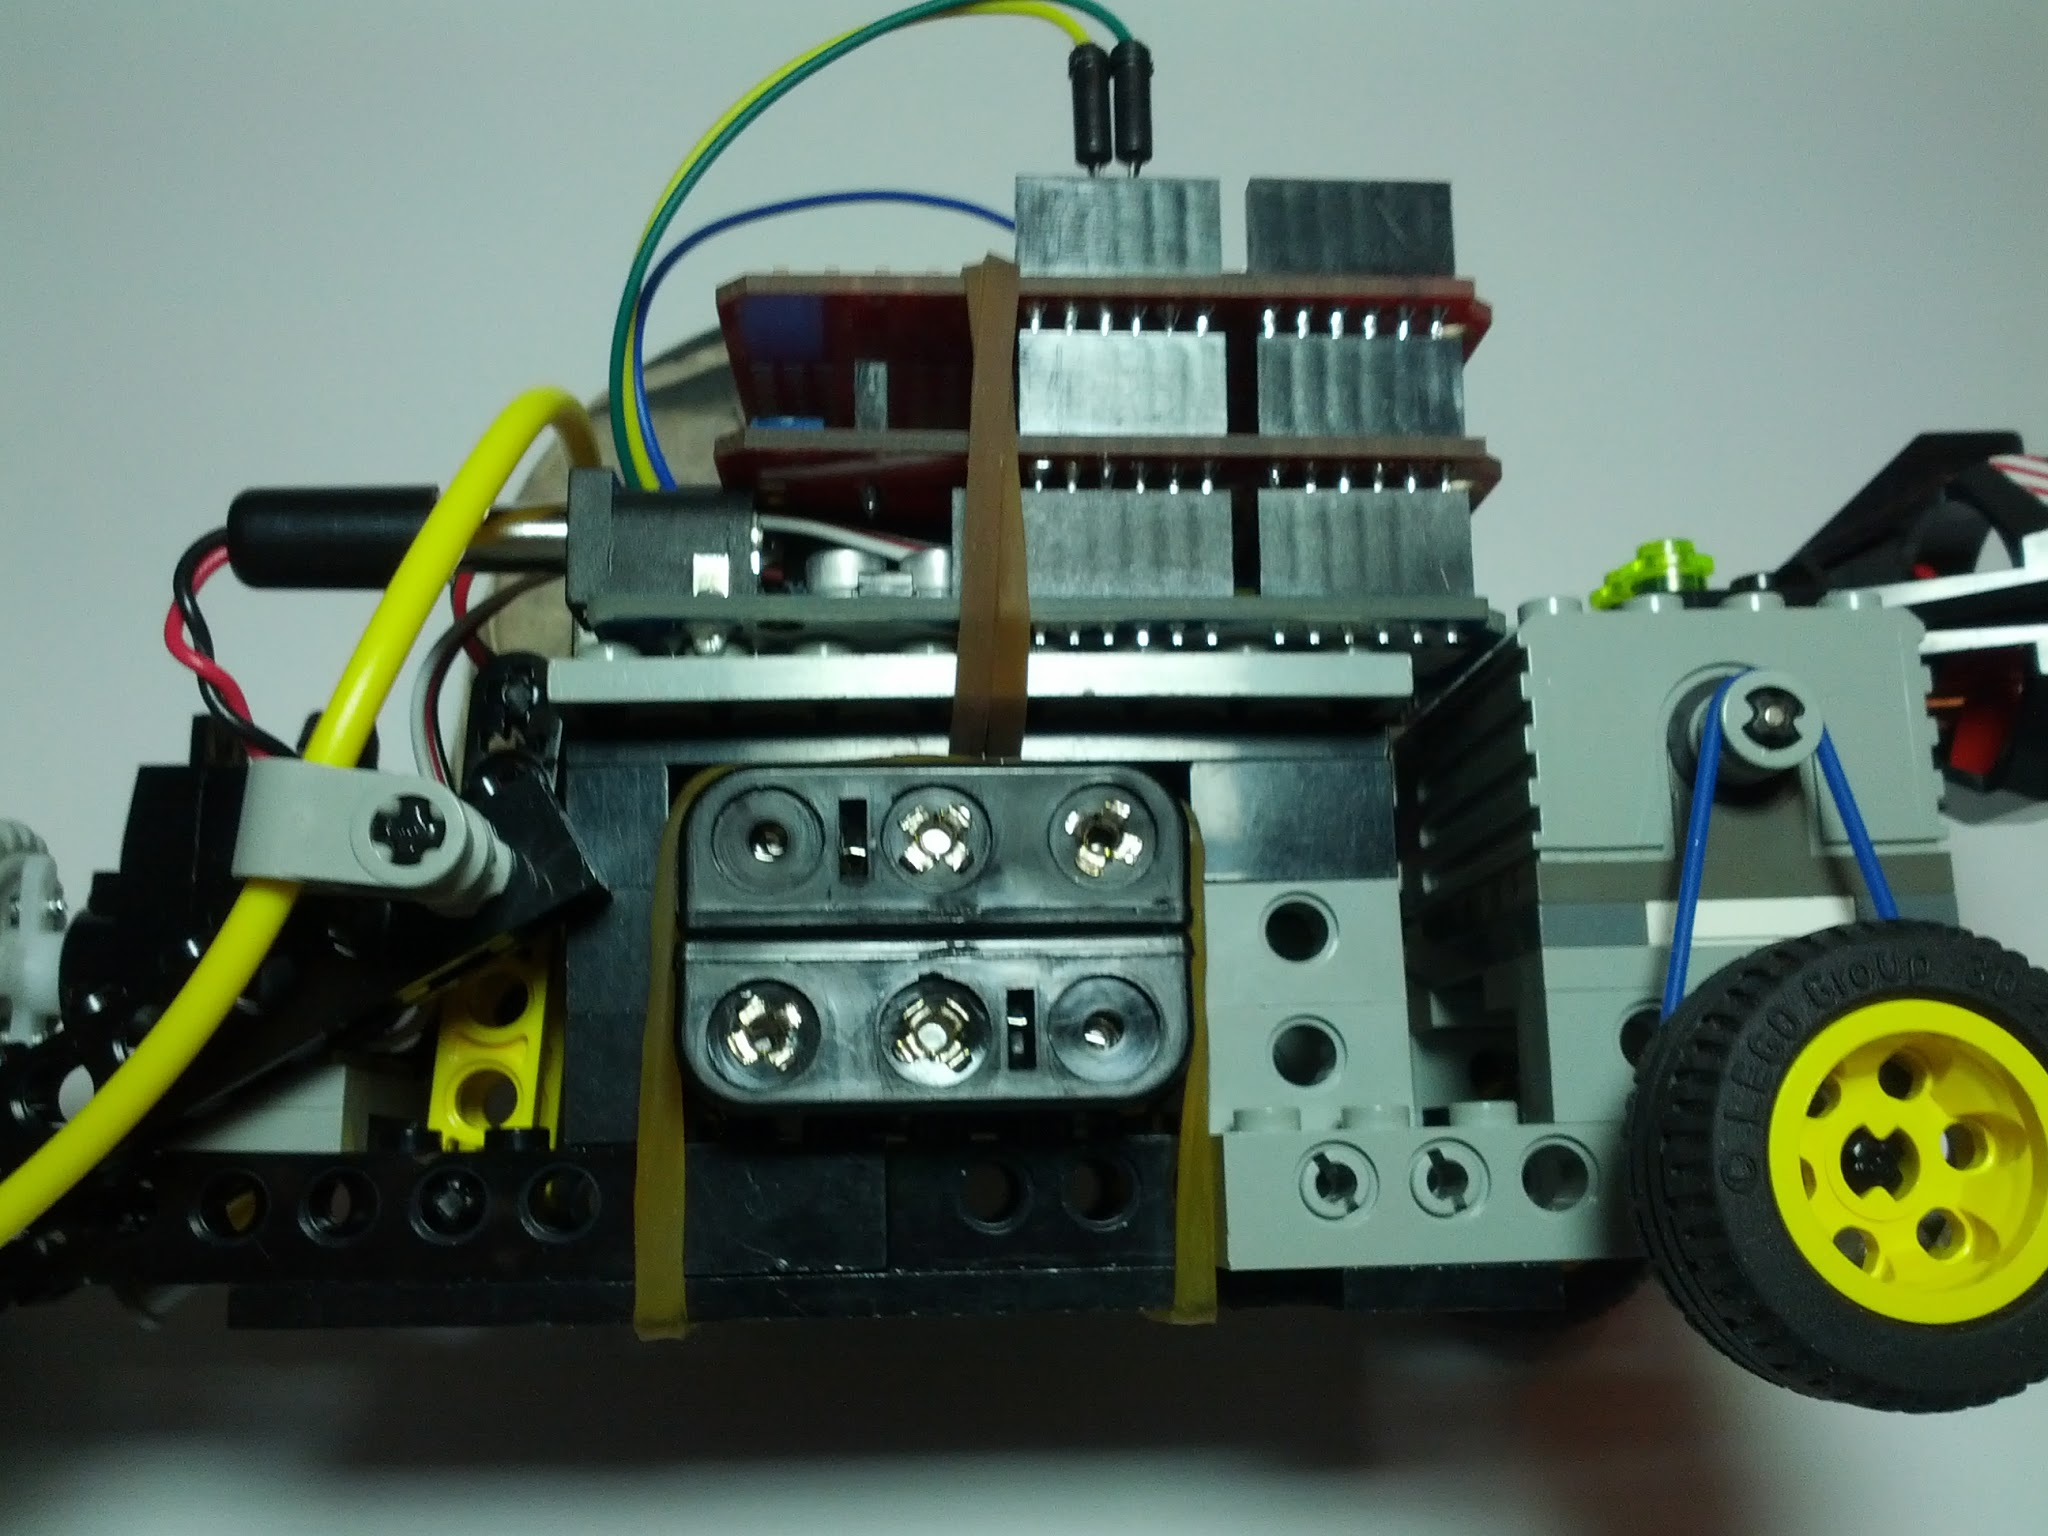 Picture of Final Assembly and Tweaks